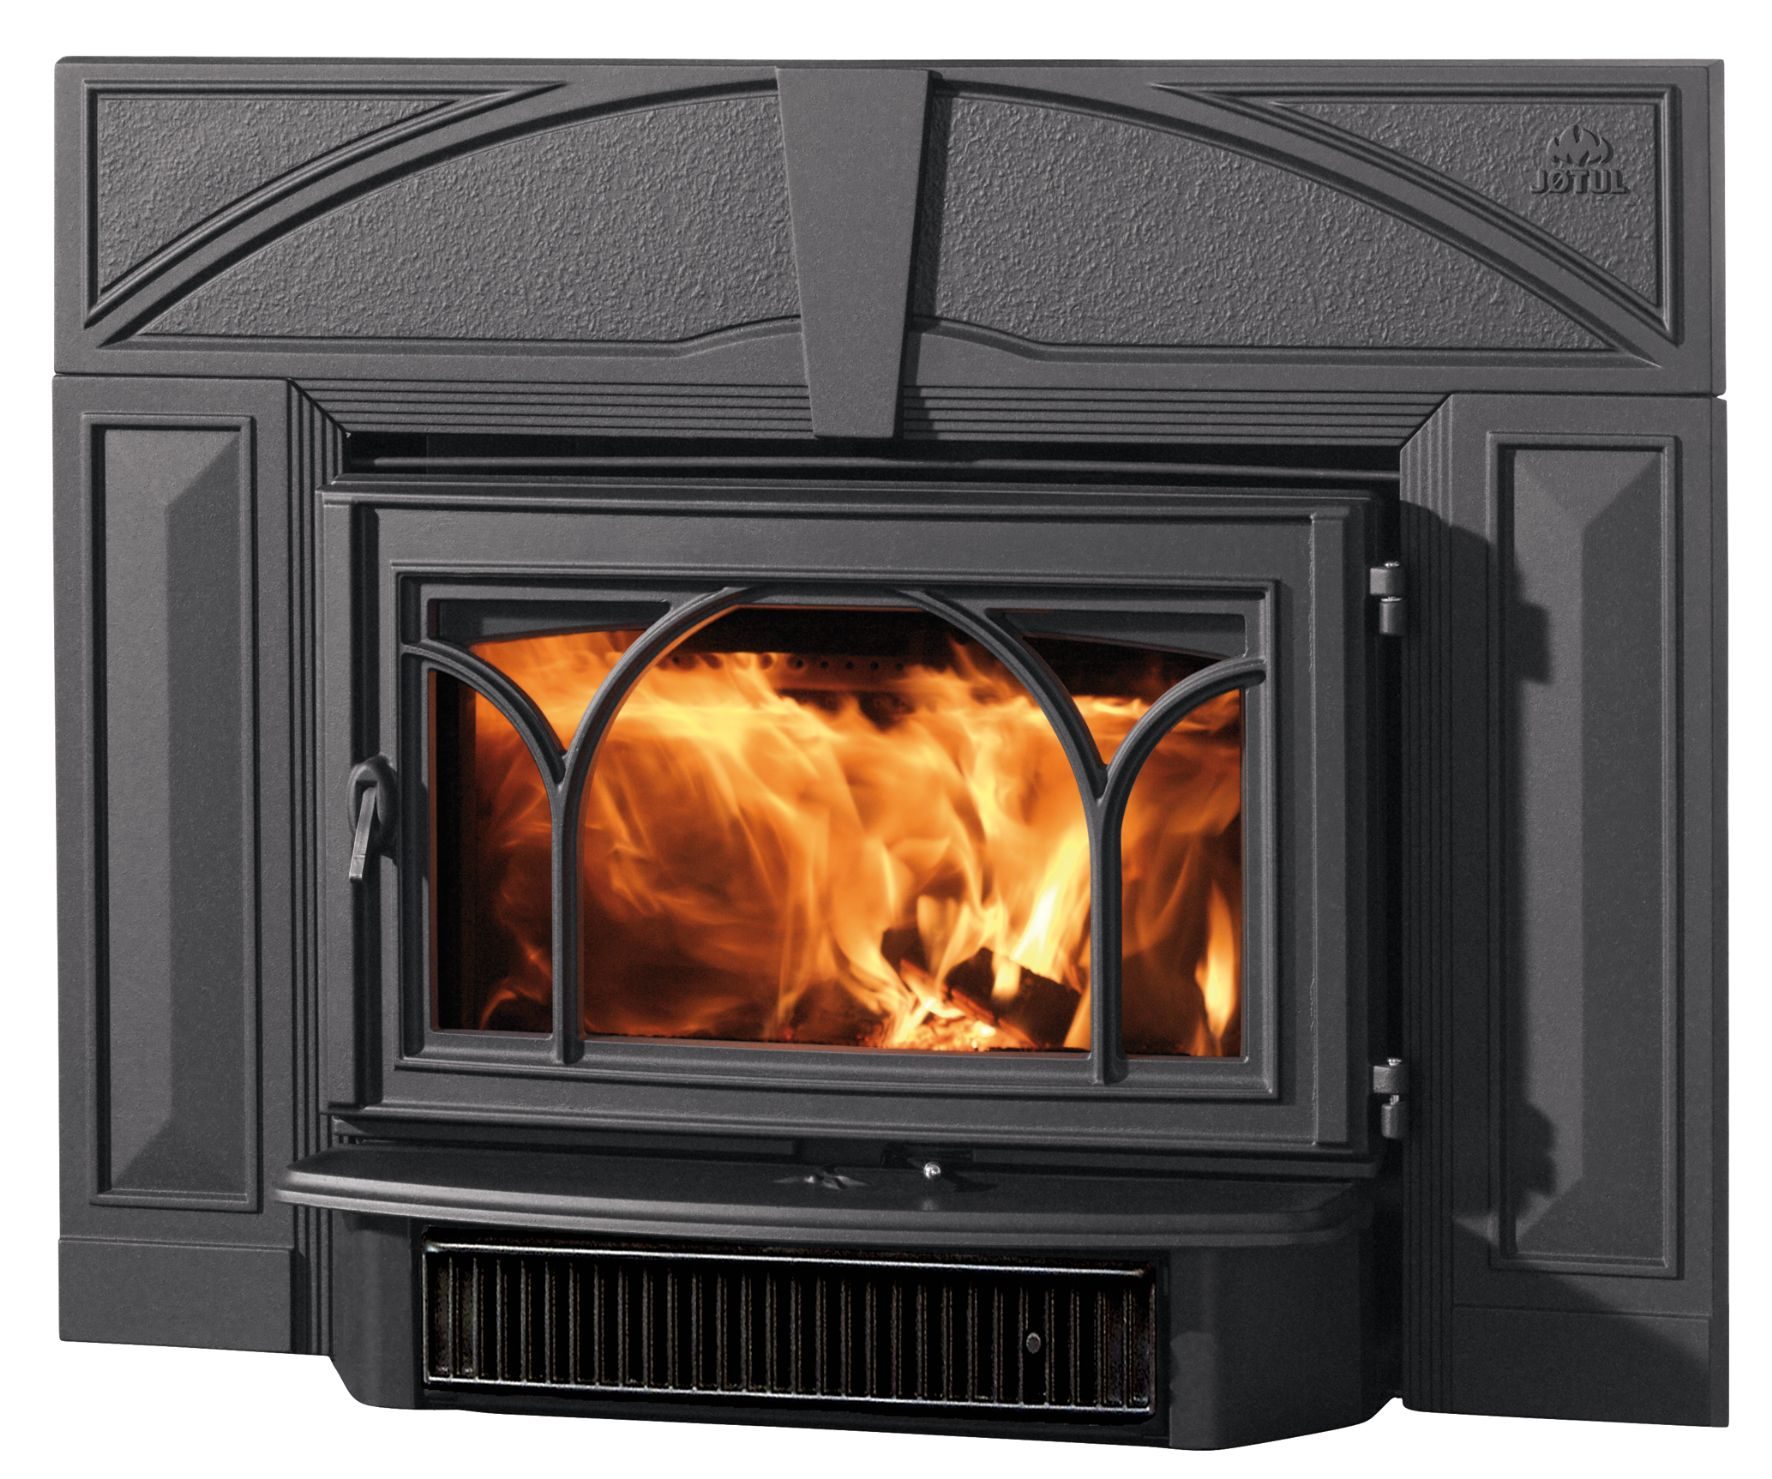 jotul kennebec c 450 is a medium sized wood fireplace insert able